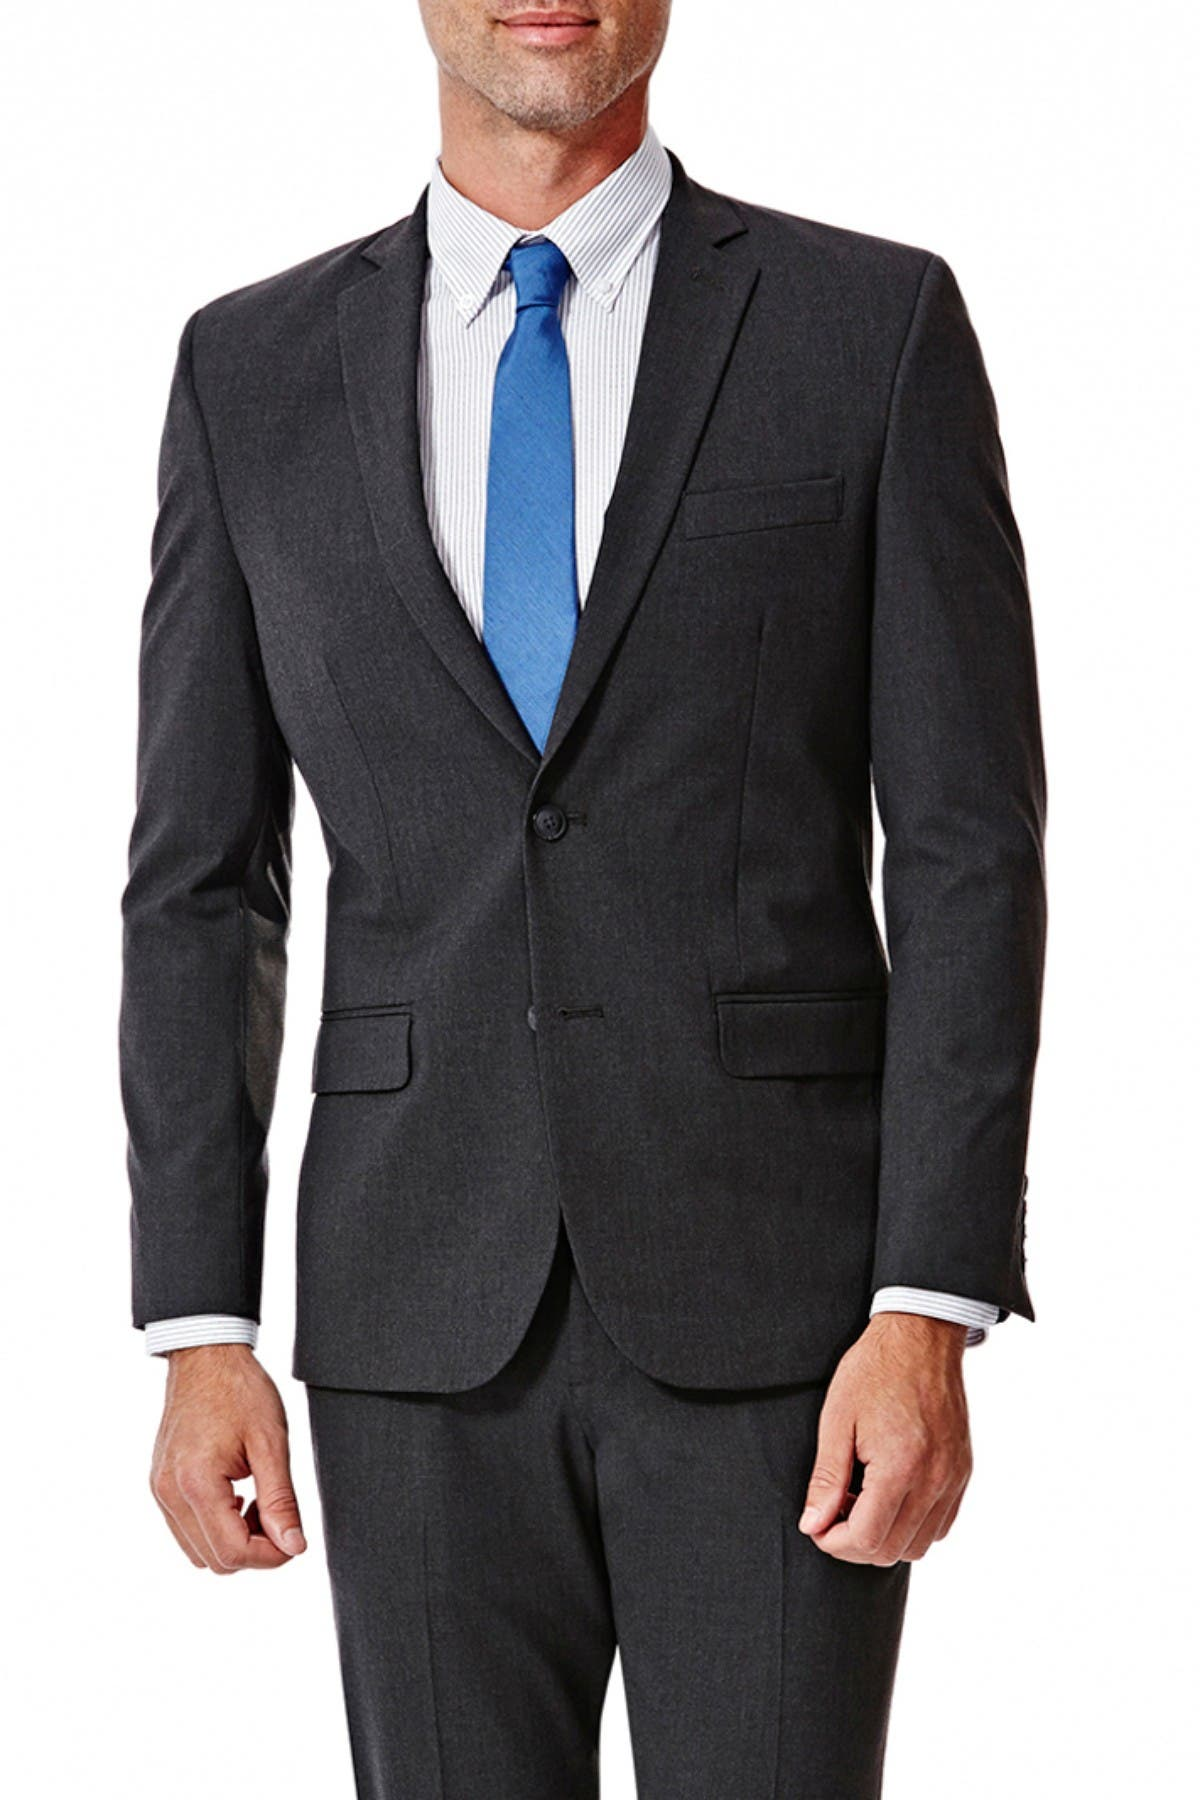 Image of HAGGAR Gabardine 4-Way Stretch Slim Fit 2-Button Suit Separate Coat